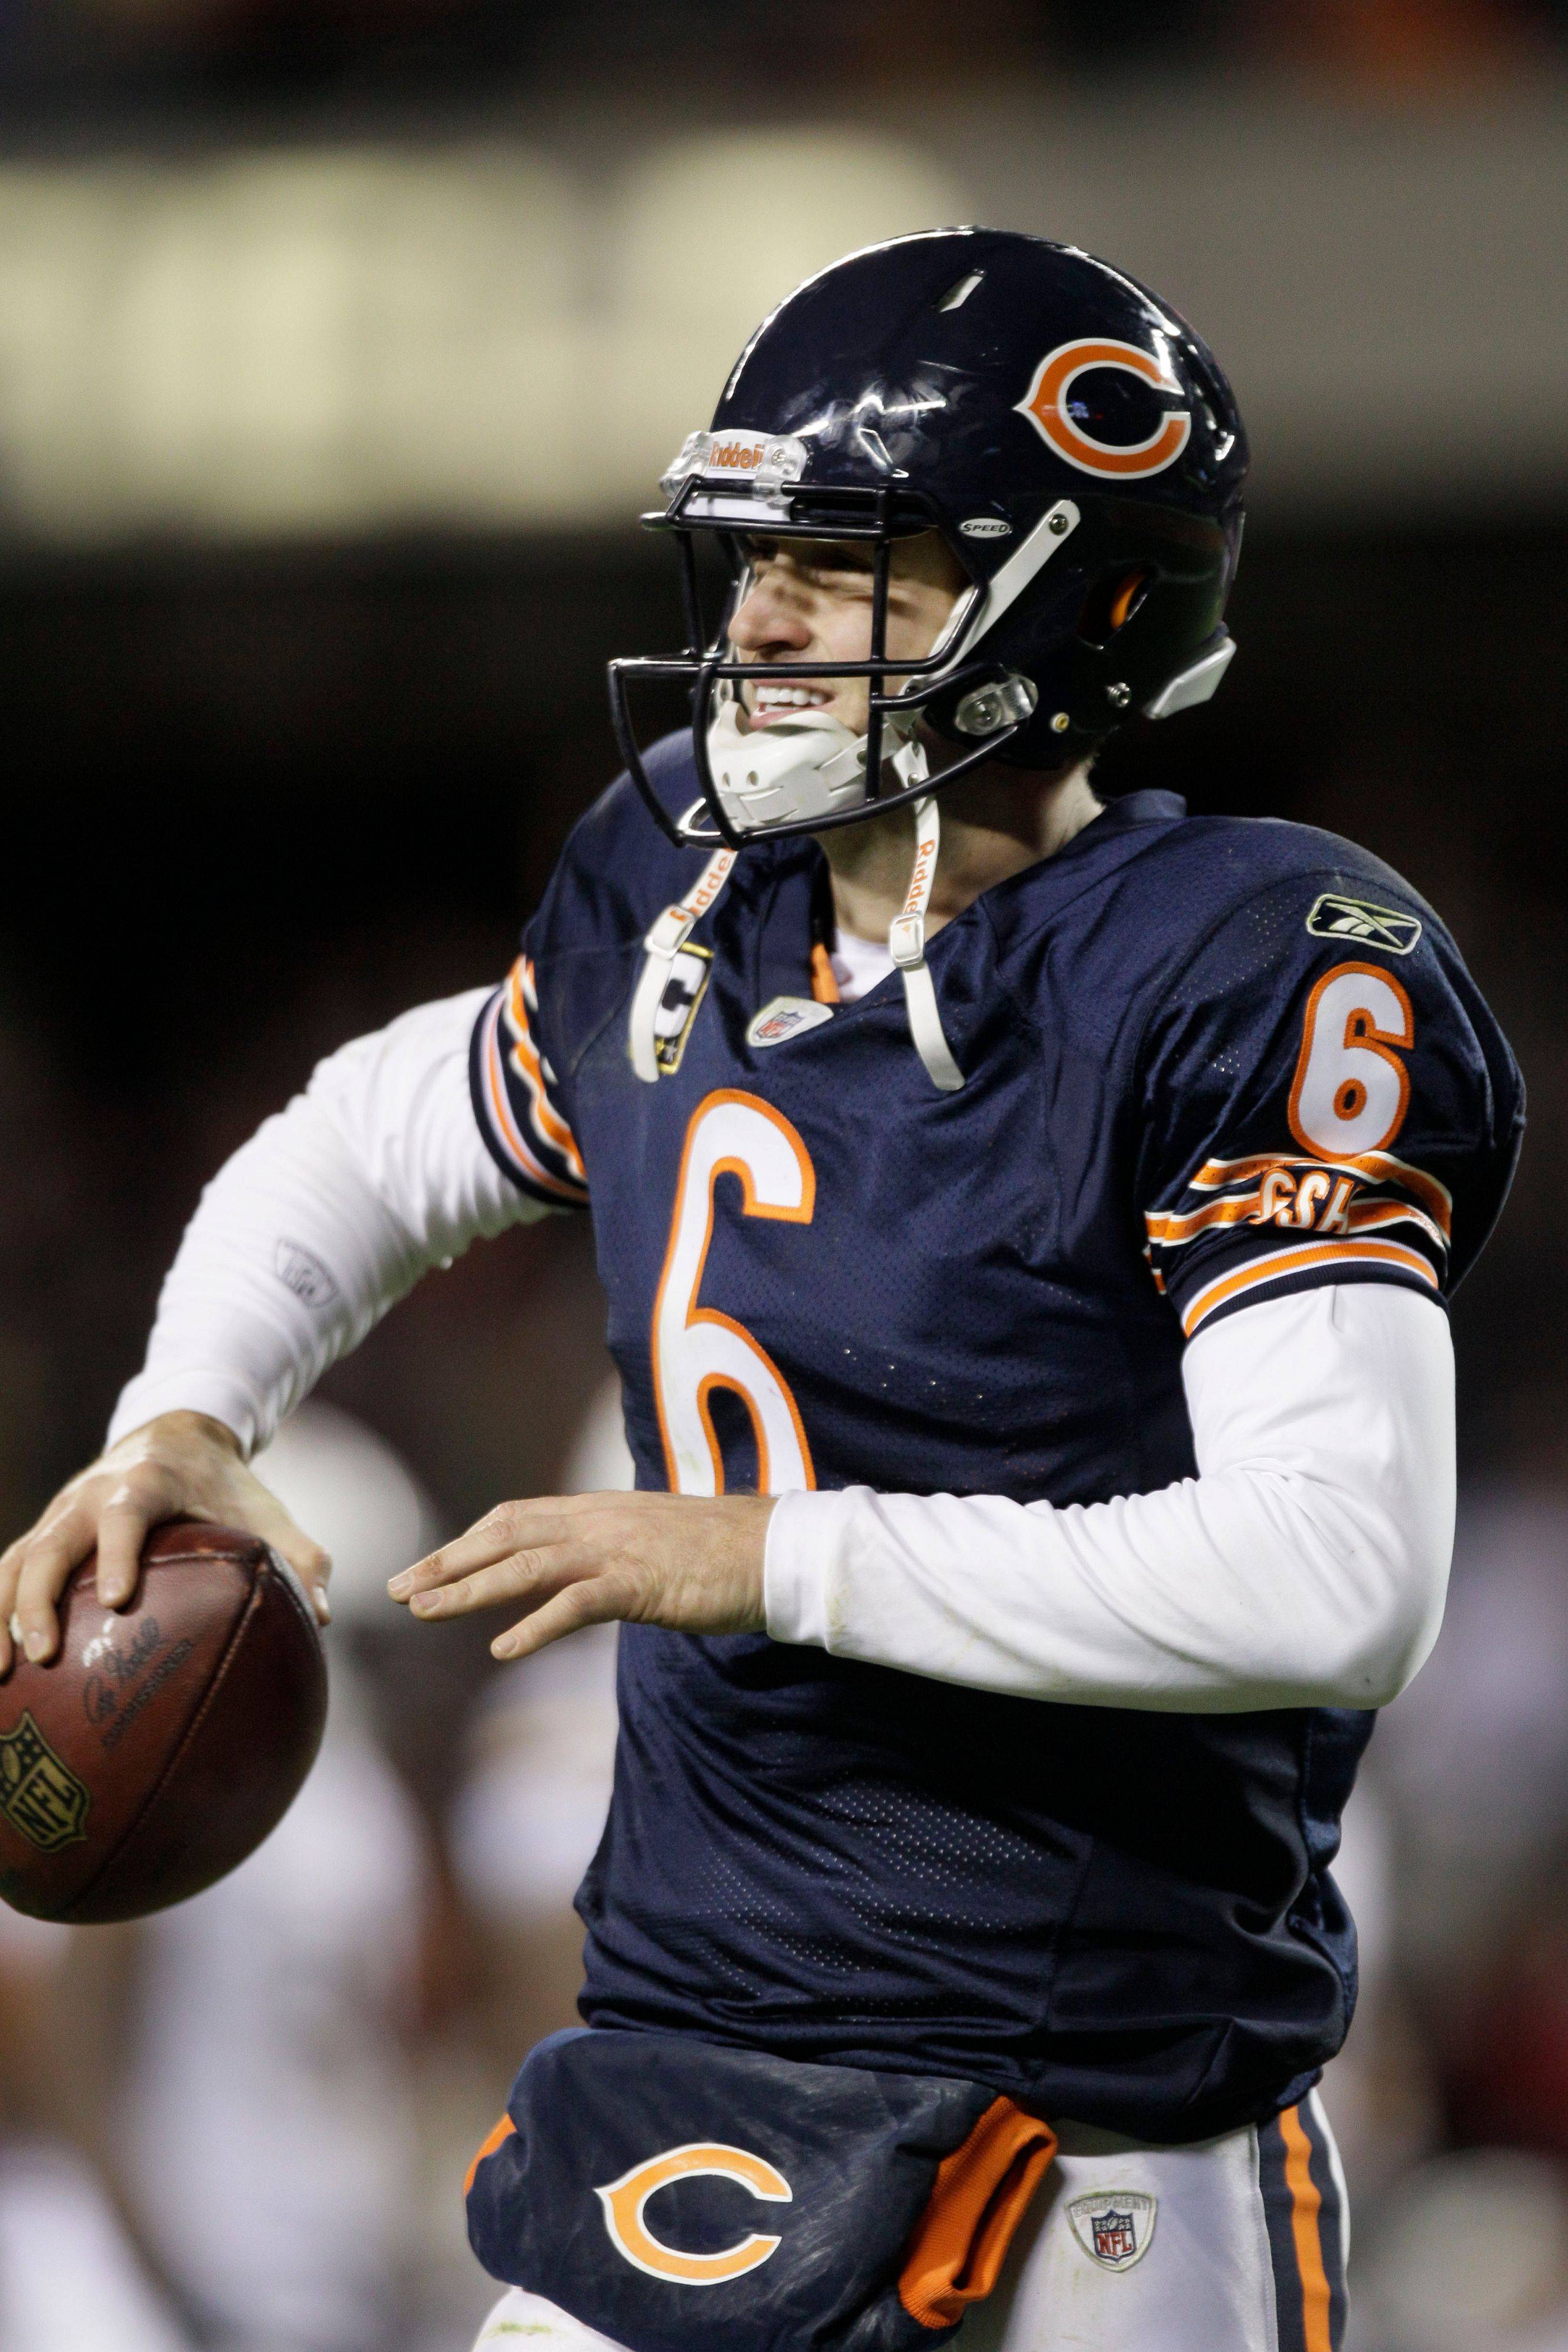 Bears quarterback Jay Cutler warms up on the sideline before going back in the game after injuring his right thumb in the fourth quarter Sunday.